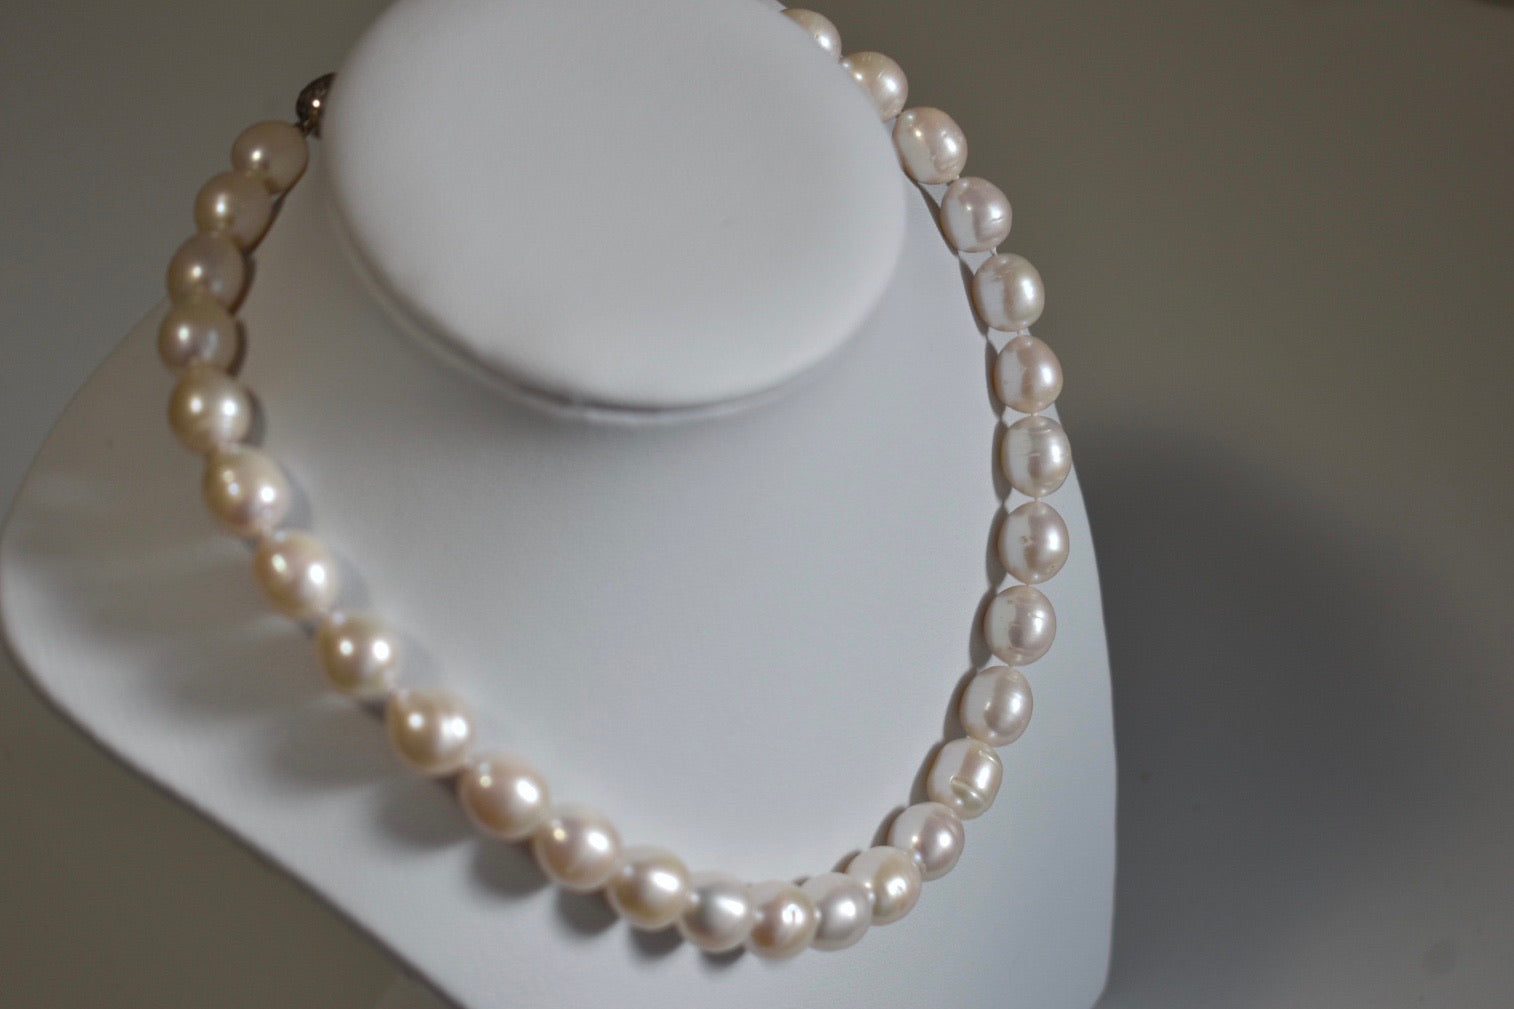 White Freshwater Oval Pearl Necklace, 10.50-11.50mm